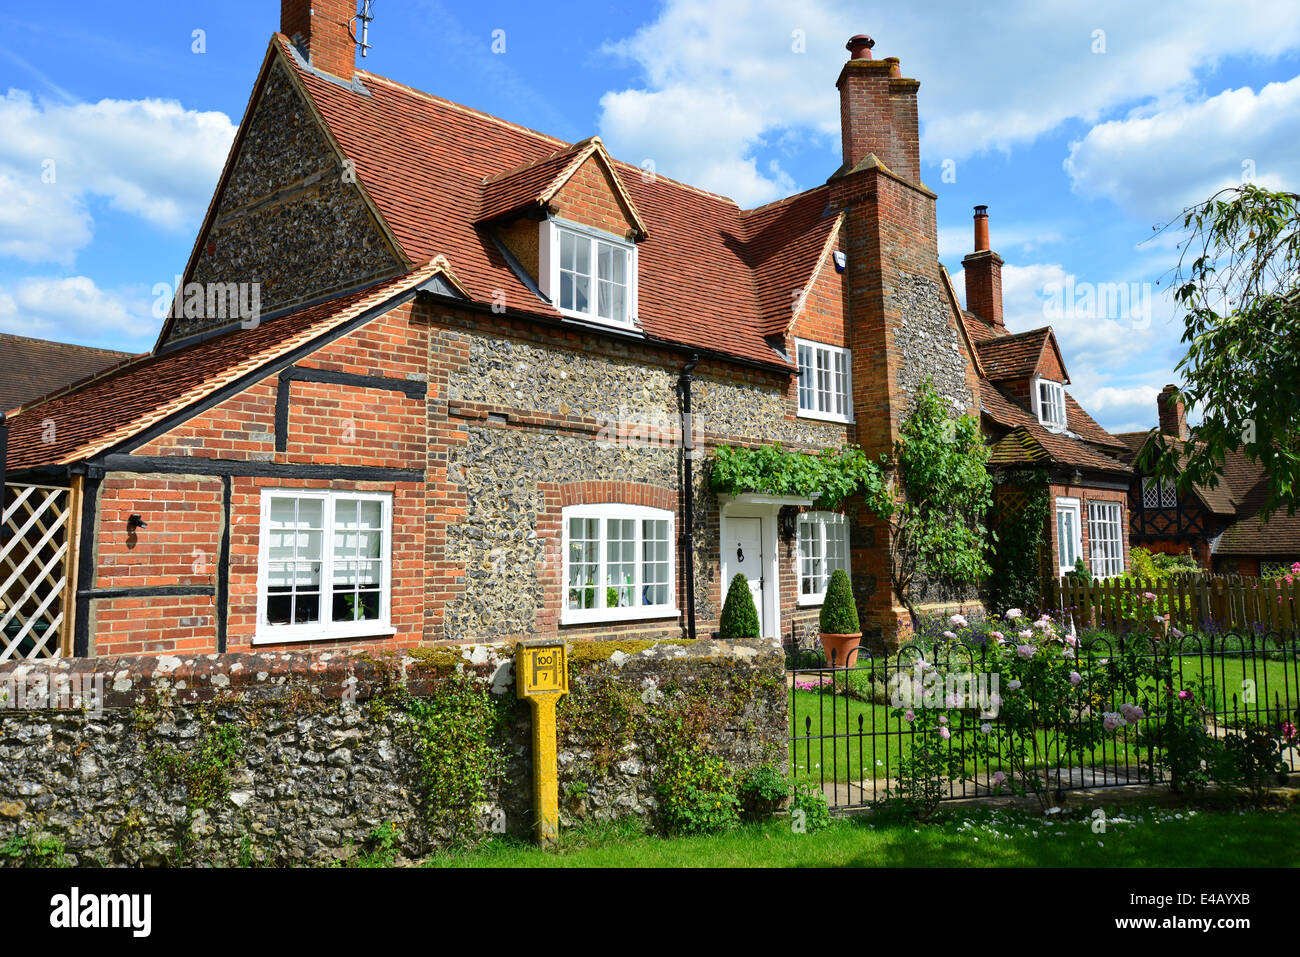 Period flint cottage, Hambleden, Buckinghamshire, England, United Kingdom - Stock Image